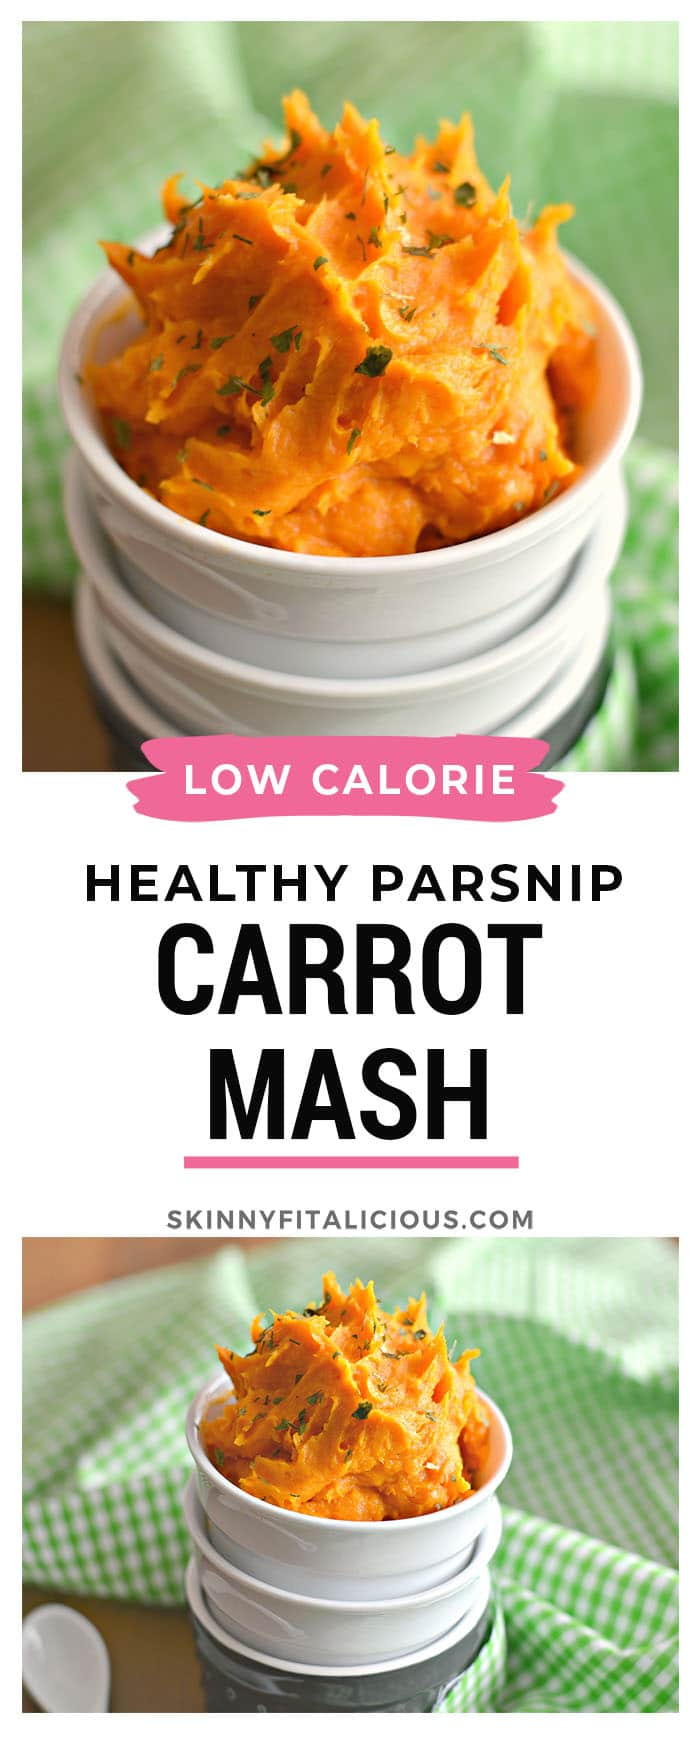 This Parsnip Carrot Mash is a healthy low calorie twist on traditional mashed potatoes. Adelicious and easy to make side perfect to pair with any protein! Paleo + Vegan + Gluten Free + Low Calorie